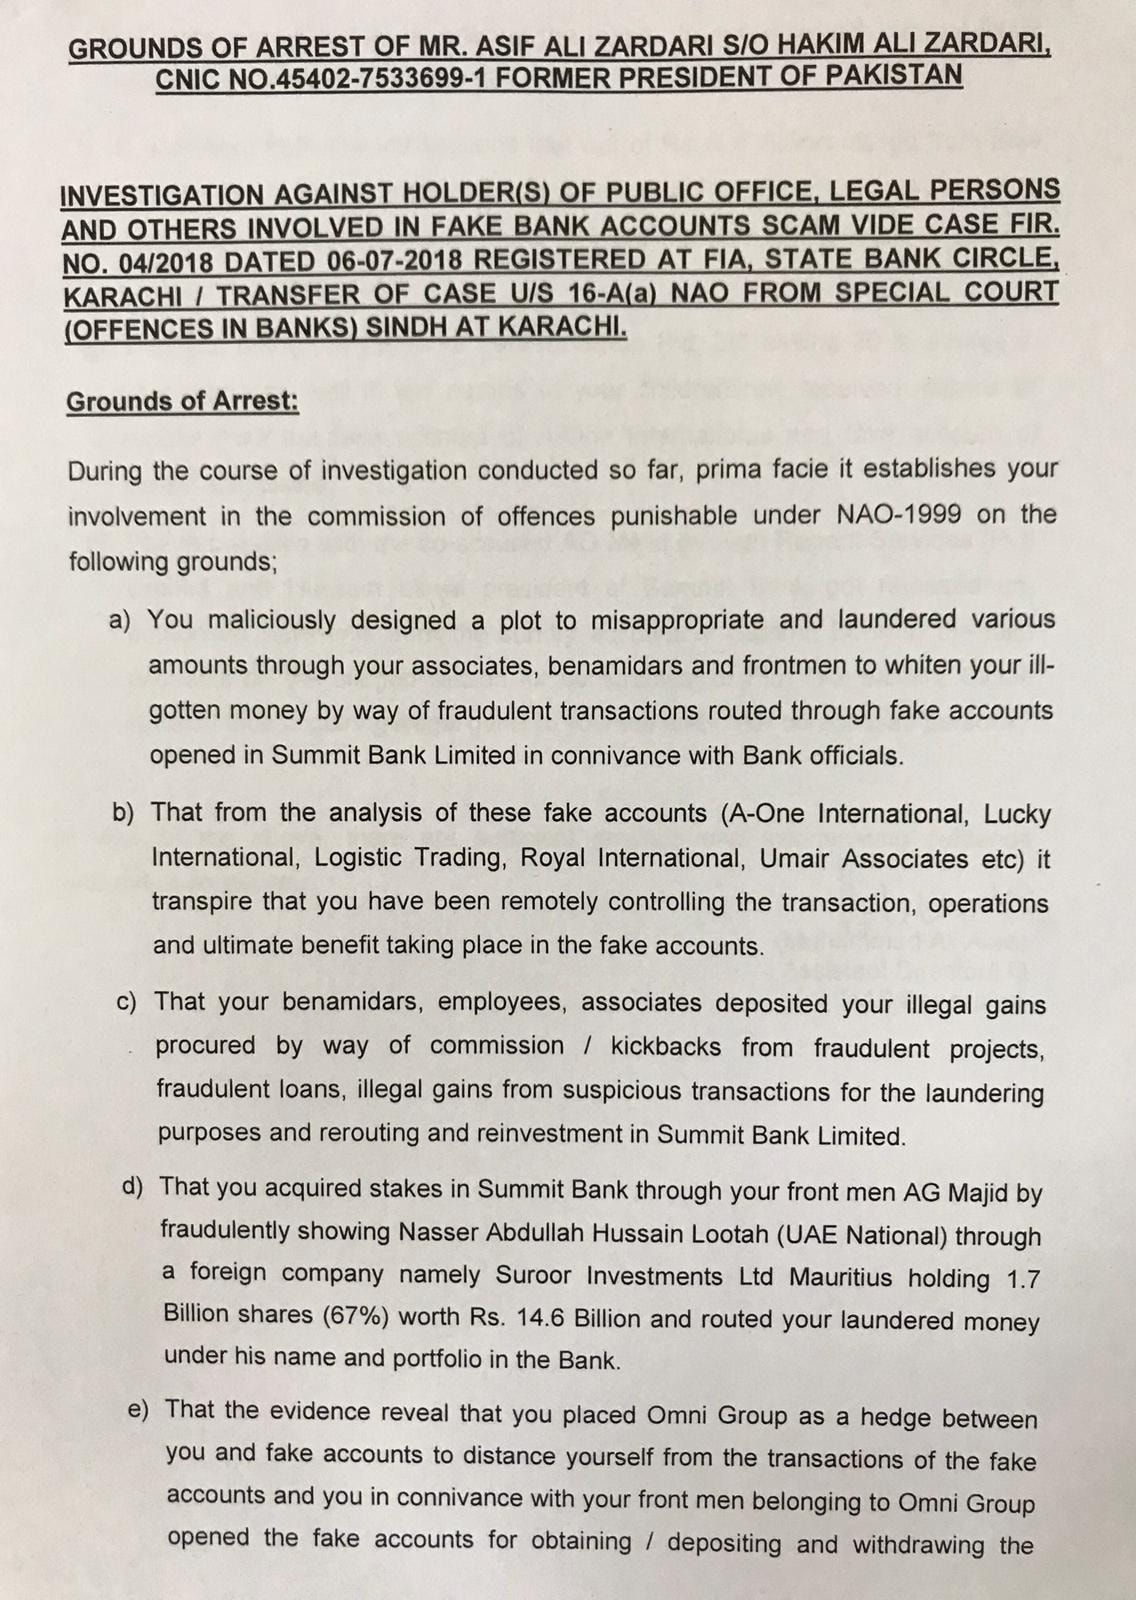 NAB grounds for Zardari's arrest. (1)